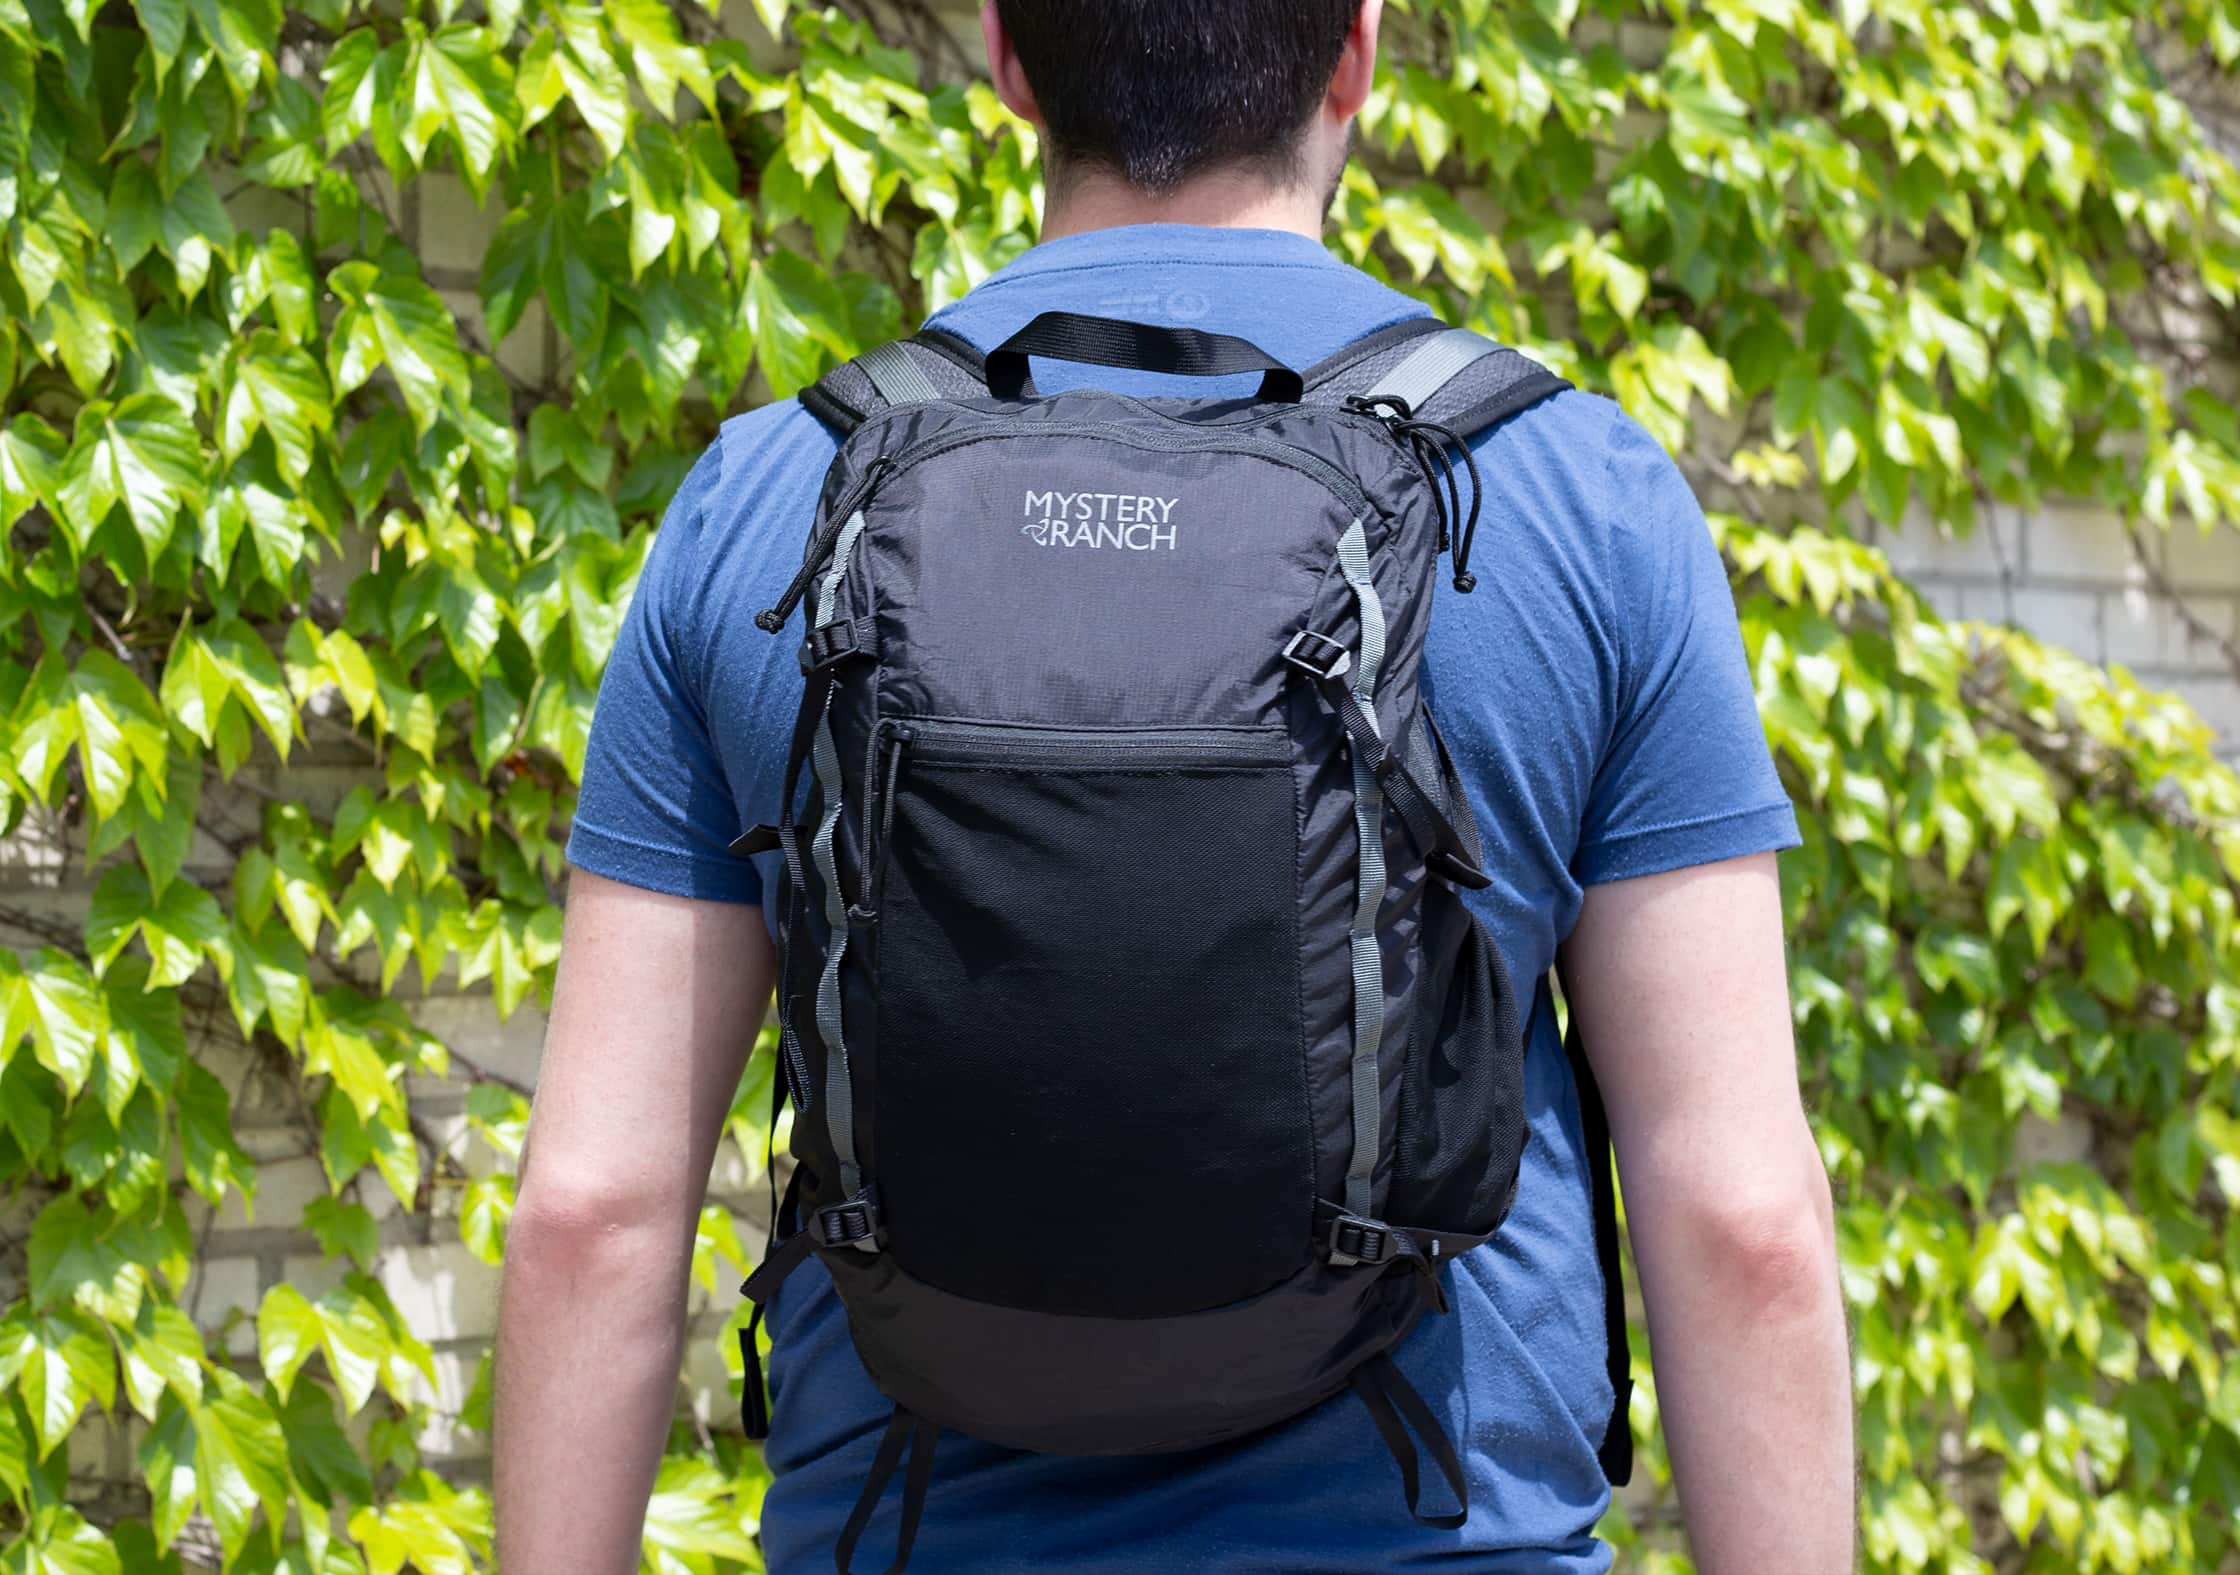 Mystery Ranch In and Out Packable Daypack